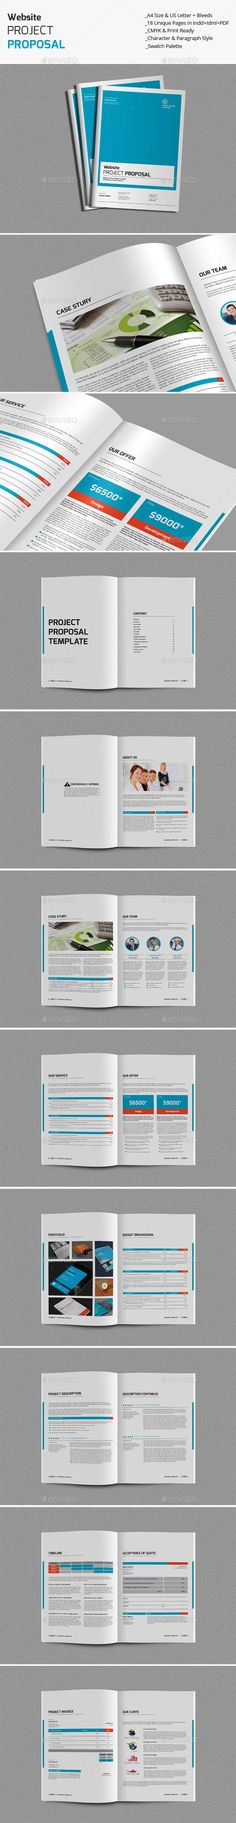 Web Design Proposal Proposals, Proposal templates and Template - best proposal templates